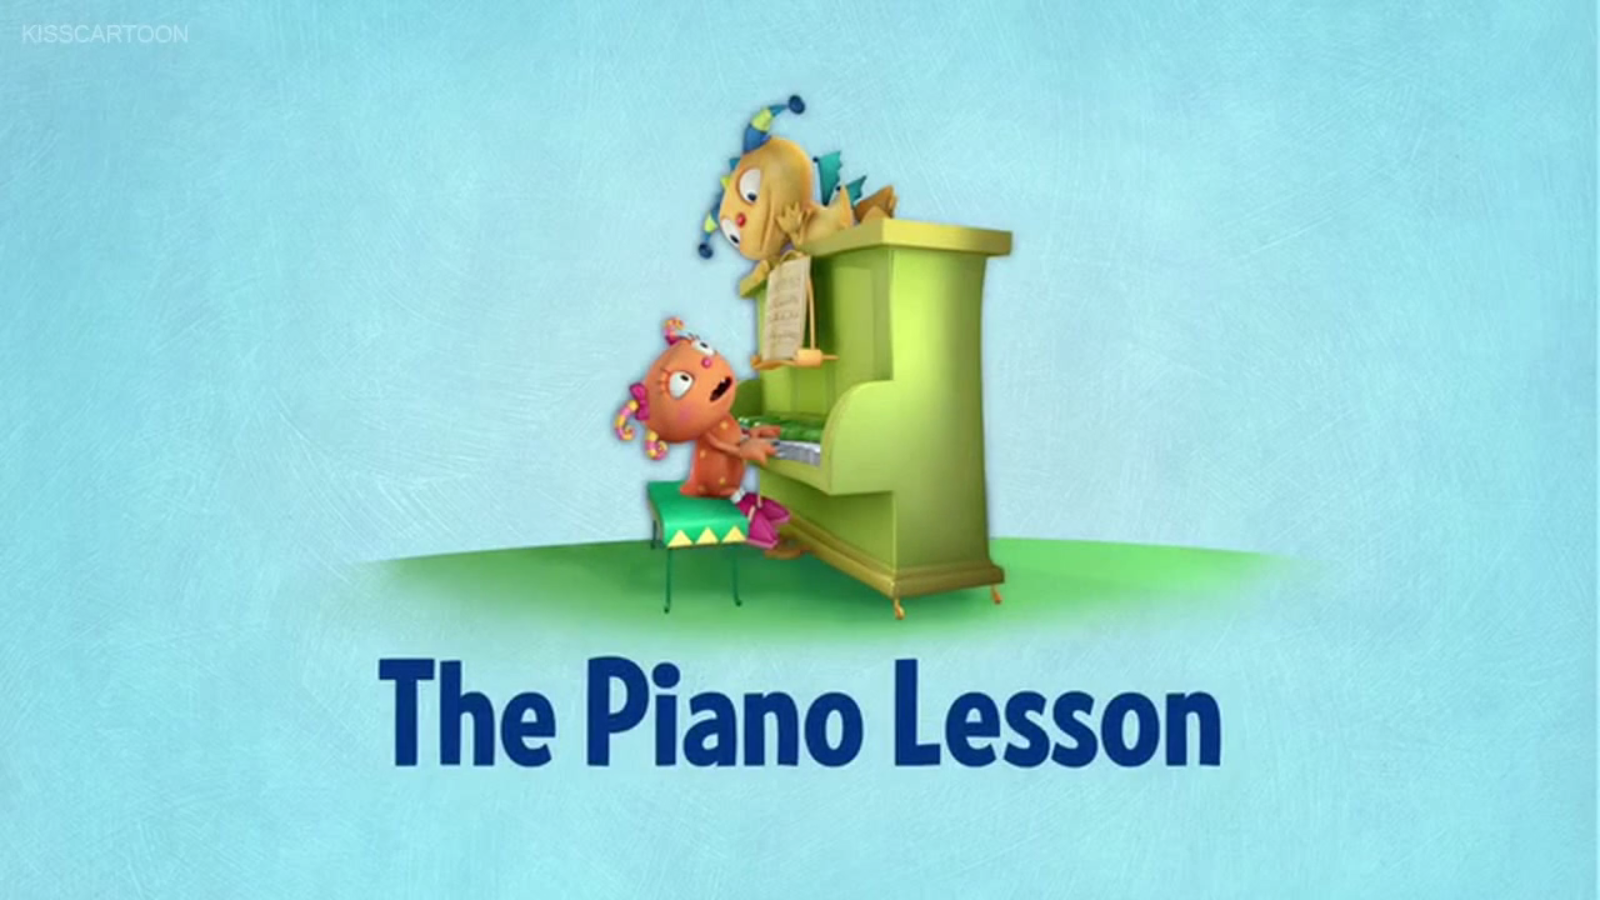 the piano lesson synopsis